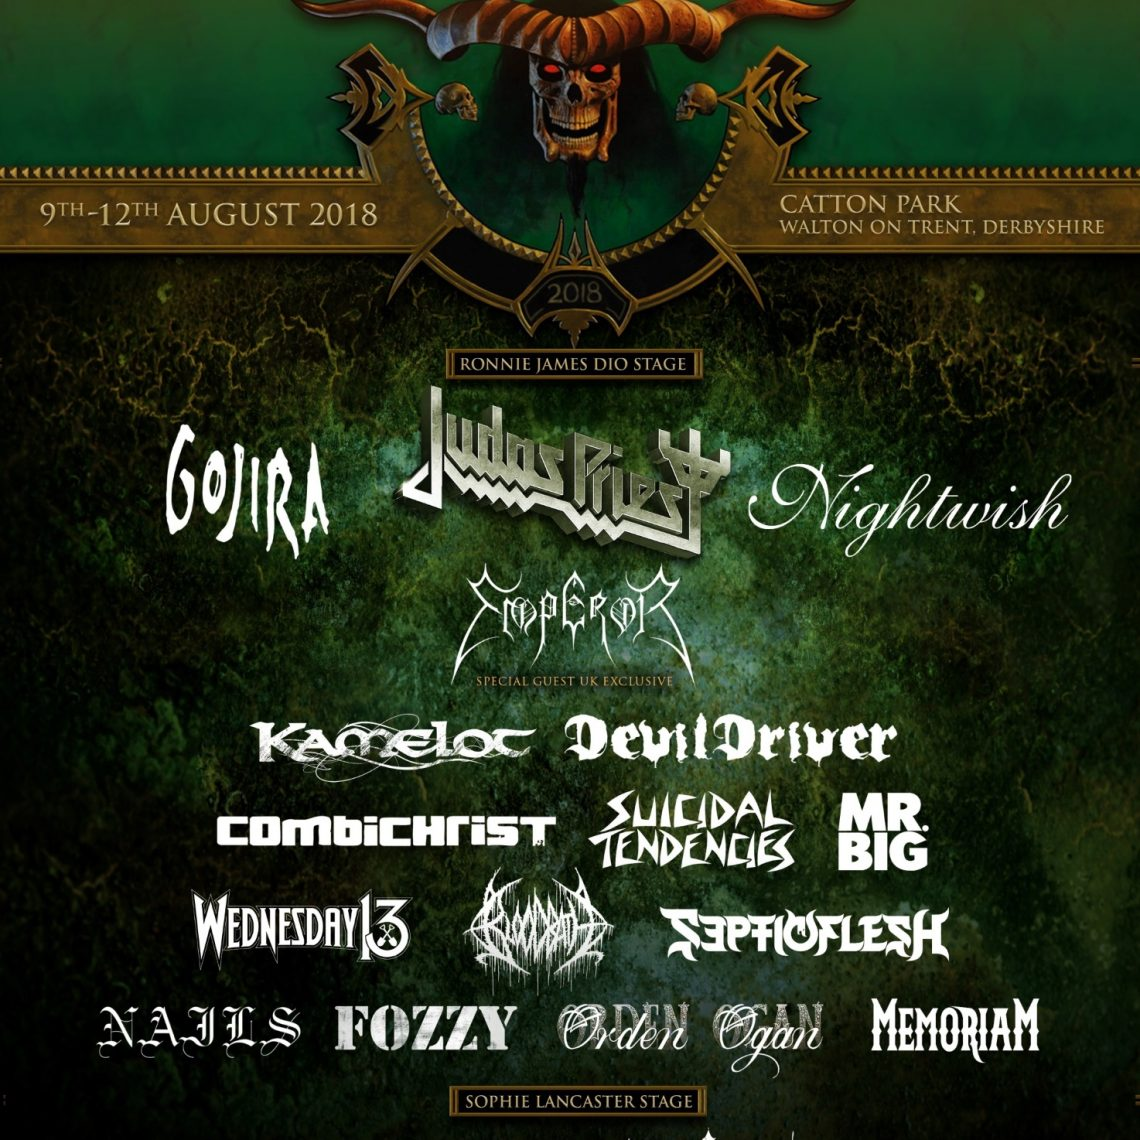 BLOODSTOCK launches 2018 deposit scheme